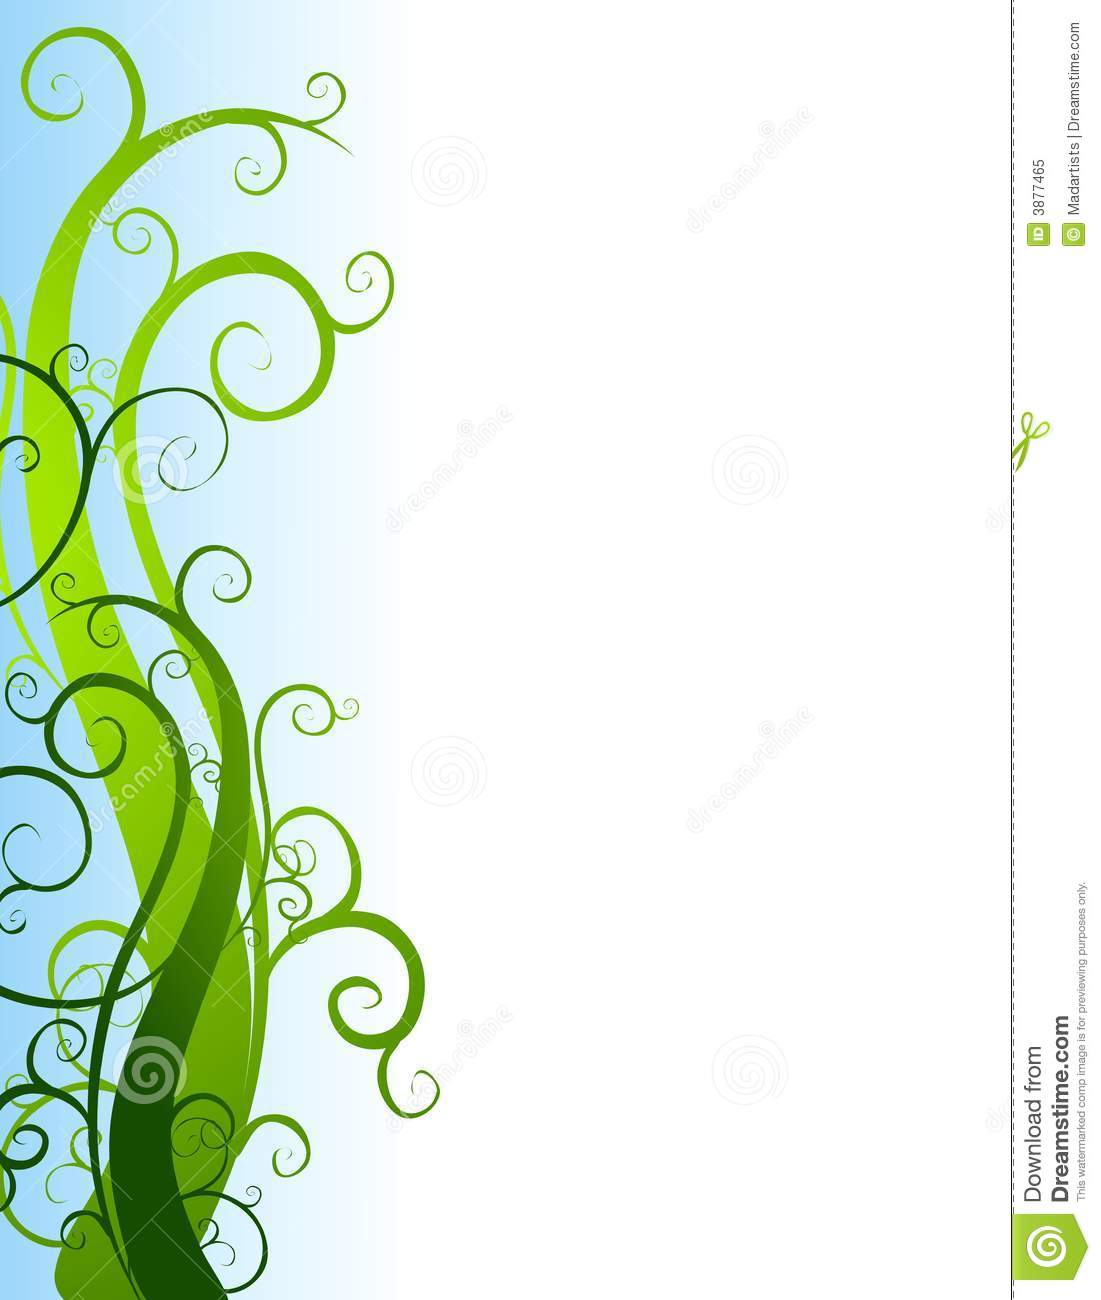 Green Garden Vines Border Royalty Free Stock Photo.